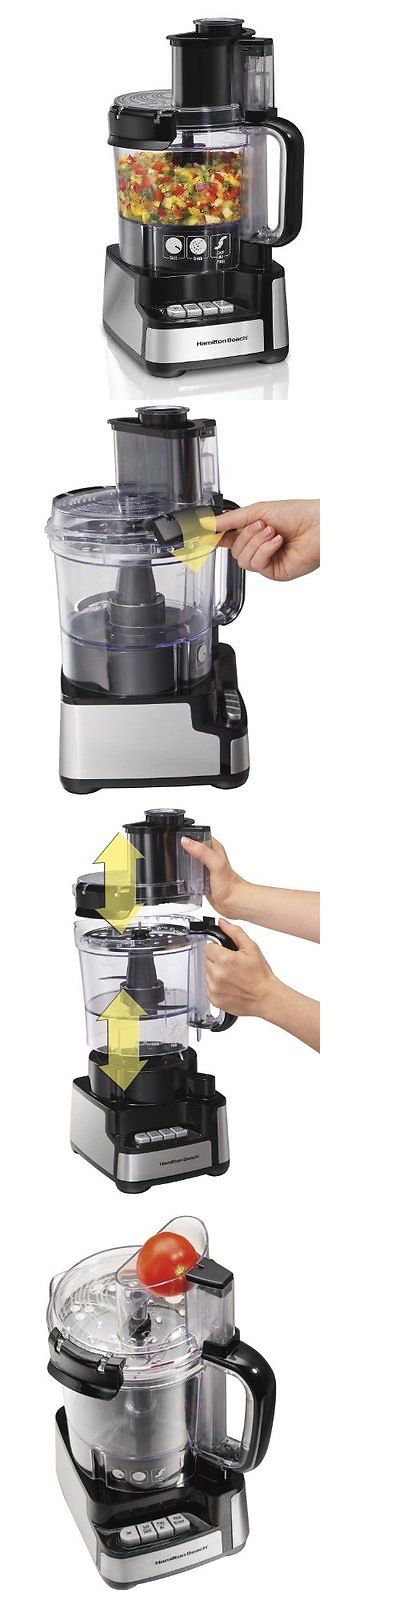 Small Kitchen Appliances: Hamilton Beach 12-Cup Stack And Snap Food Processor (70725A) New -> BUY IT NOW ONLY: $48.7 on eBay!